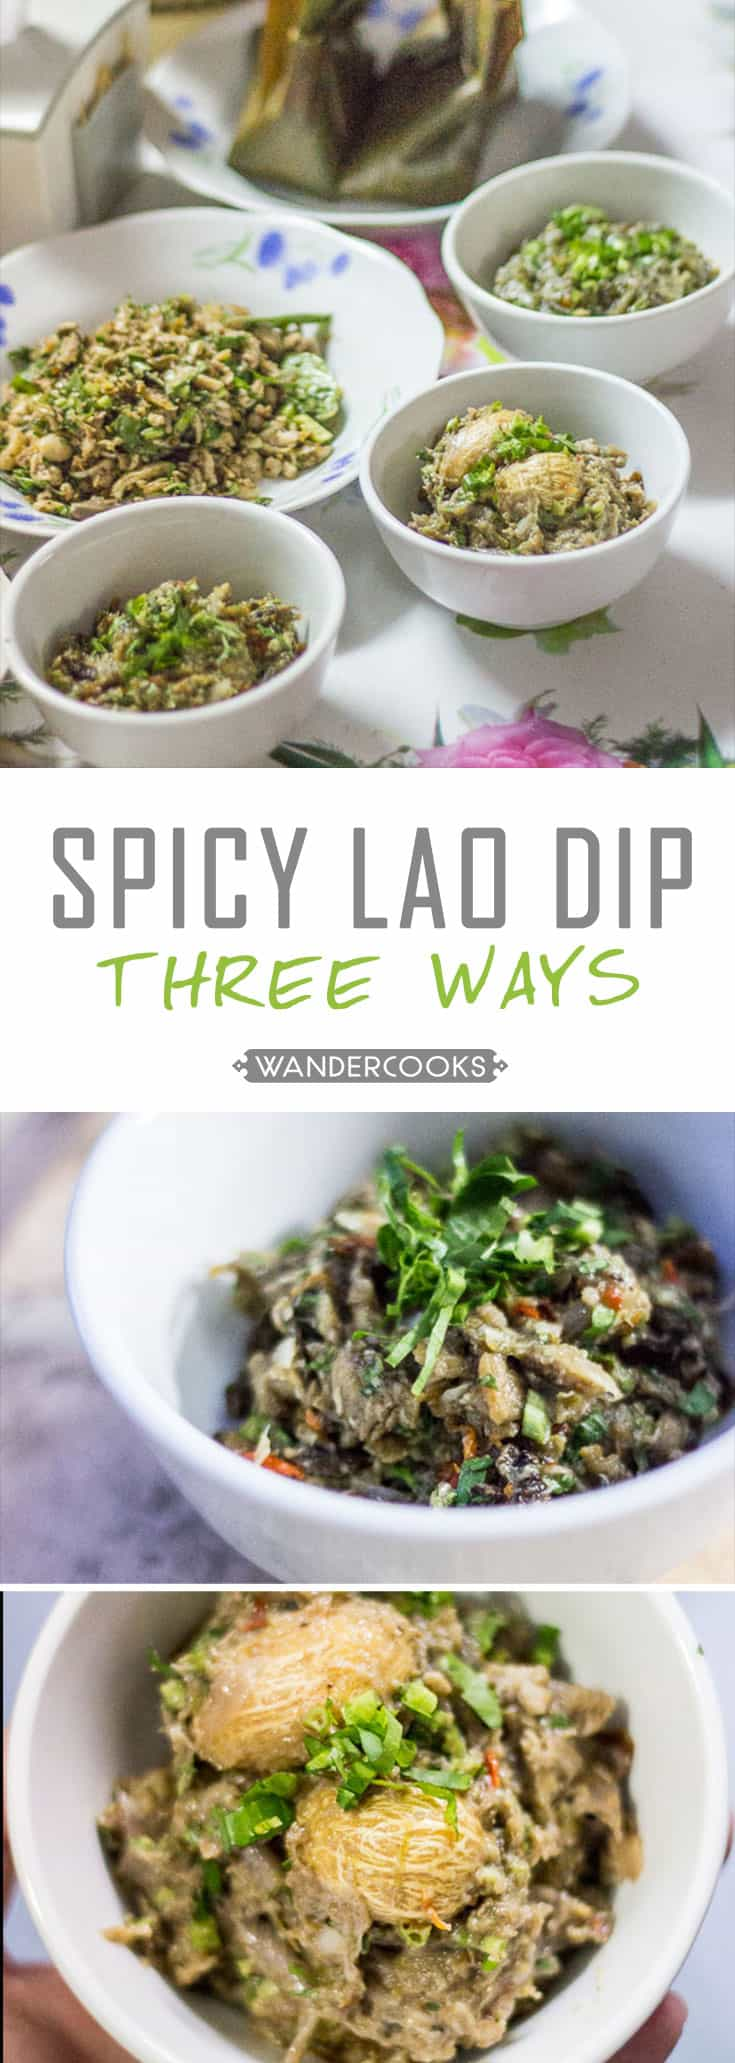 Spicy Lao Dip Three Ways - Need an IMPRESSIVE appetiser? These dips are a PINCH: Just roast, smash, serve and impress. Healthy. | wandercooks.com